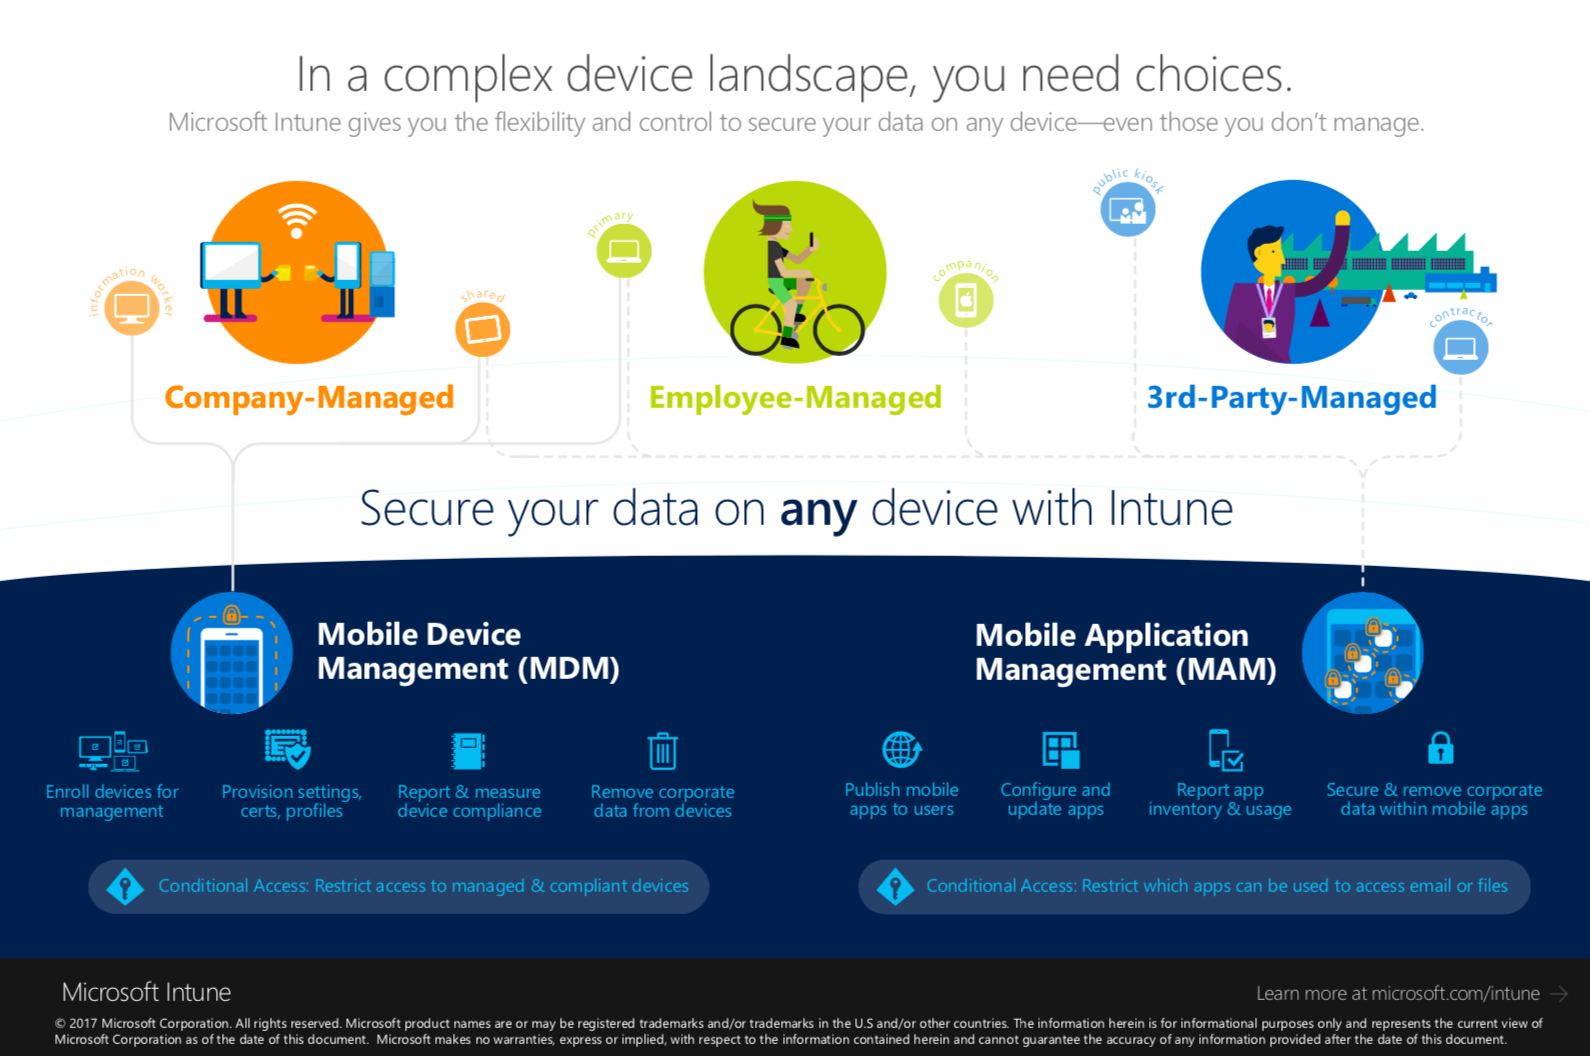 Secure your data on any device with Microsoft Intune